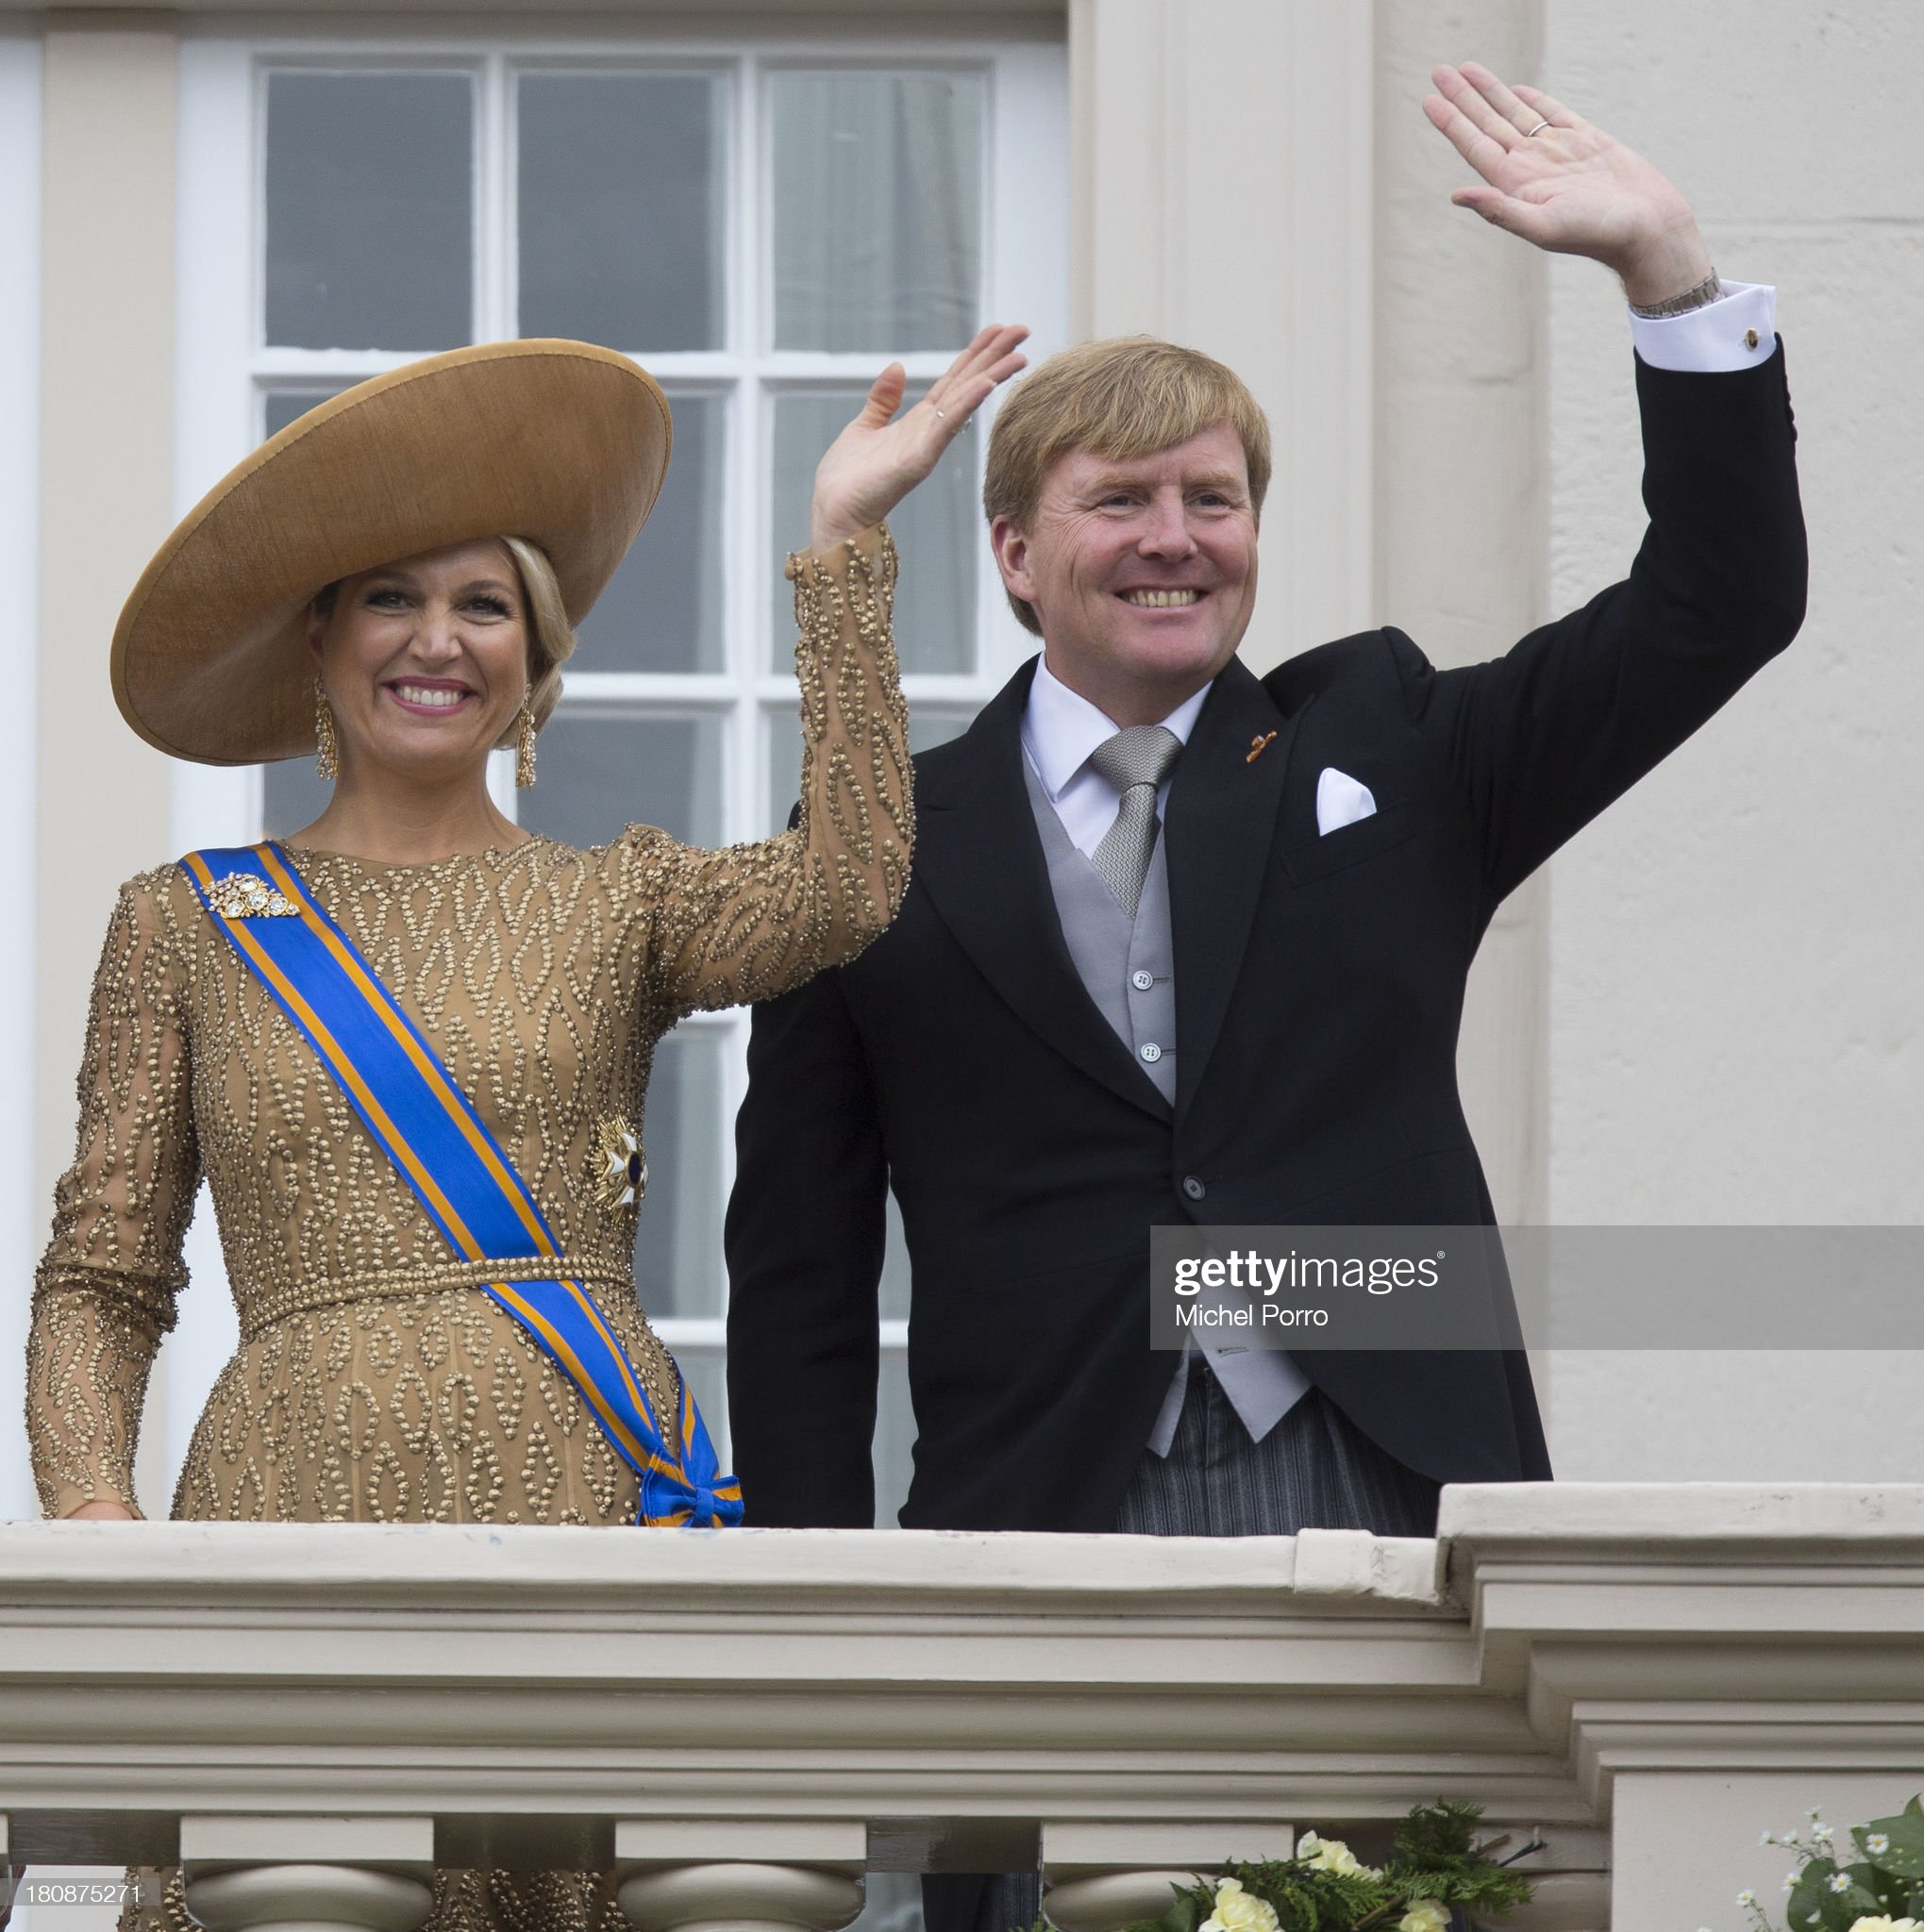 King Willem Alexander Of The Netherlands Attends Prinsjesdag (Prince's Day) : News Photo